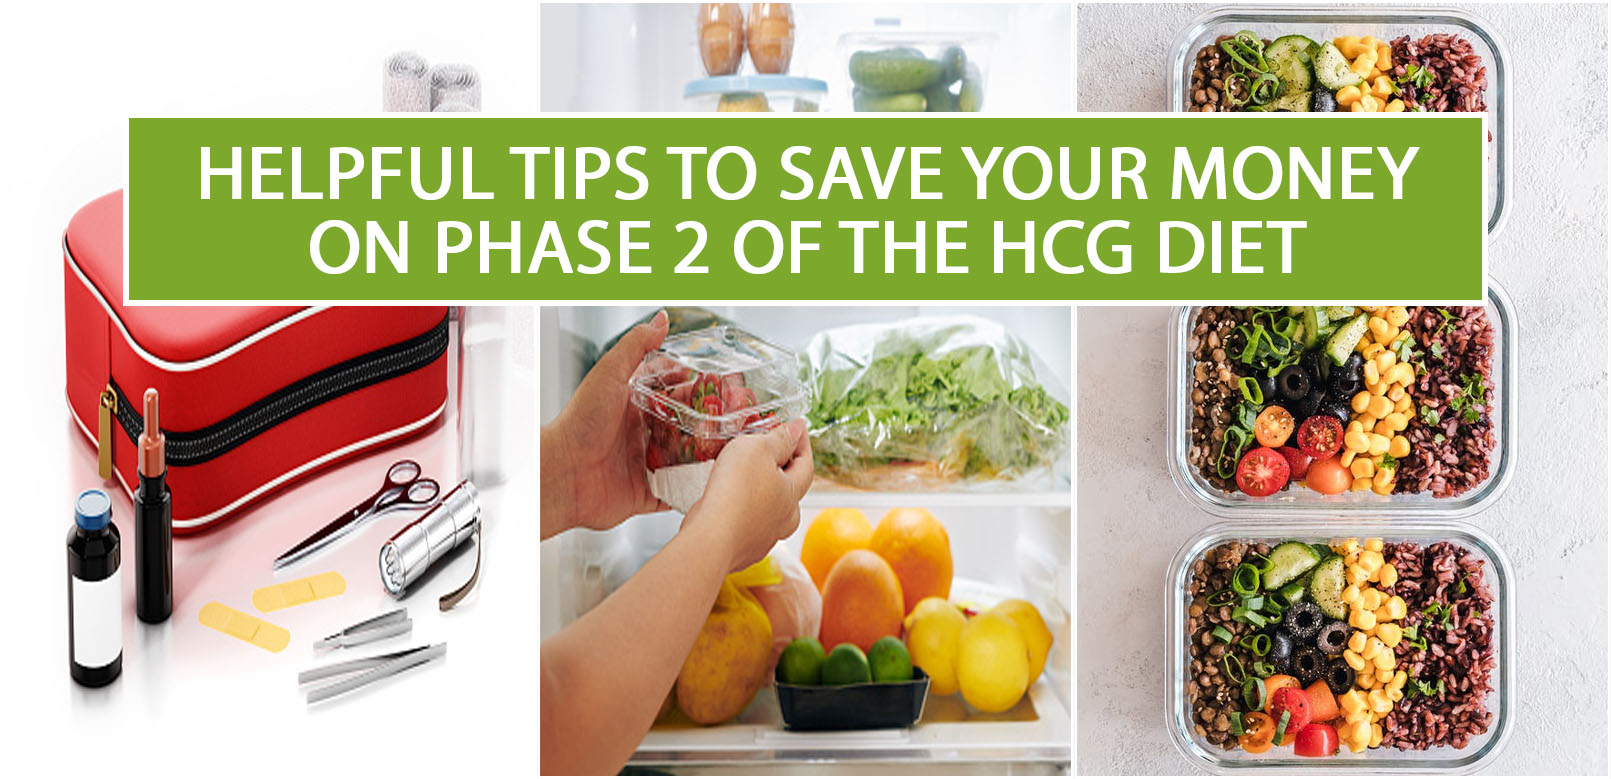 HELPFUL TIPS TO SAVE YOUR MONEY ON PHASE 2 OF THE HCG DIET